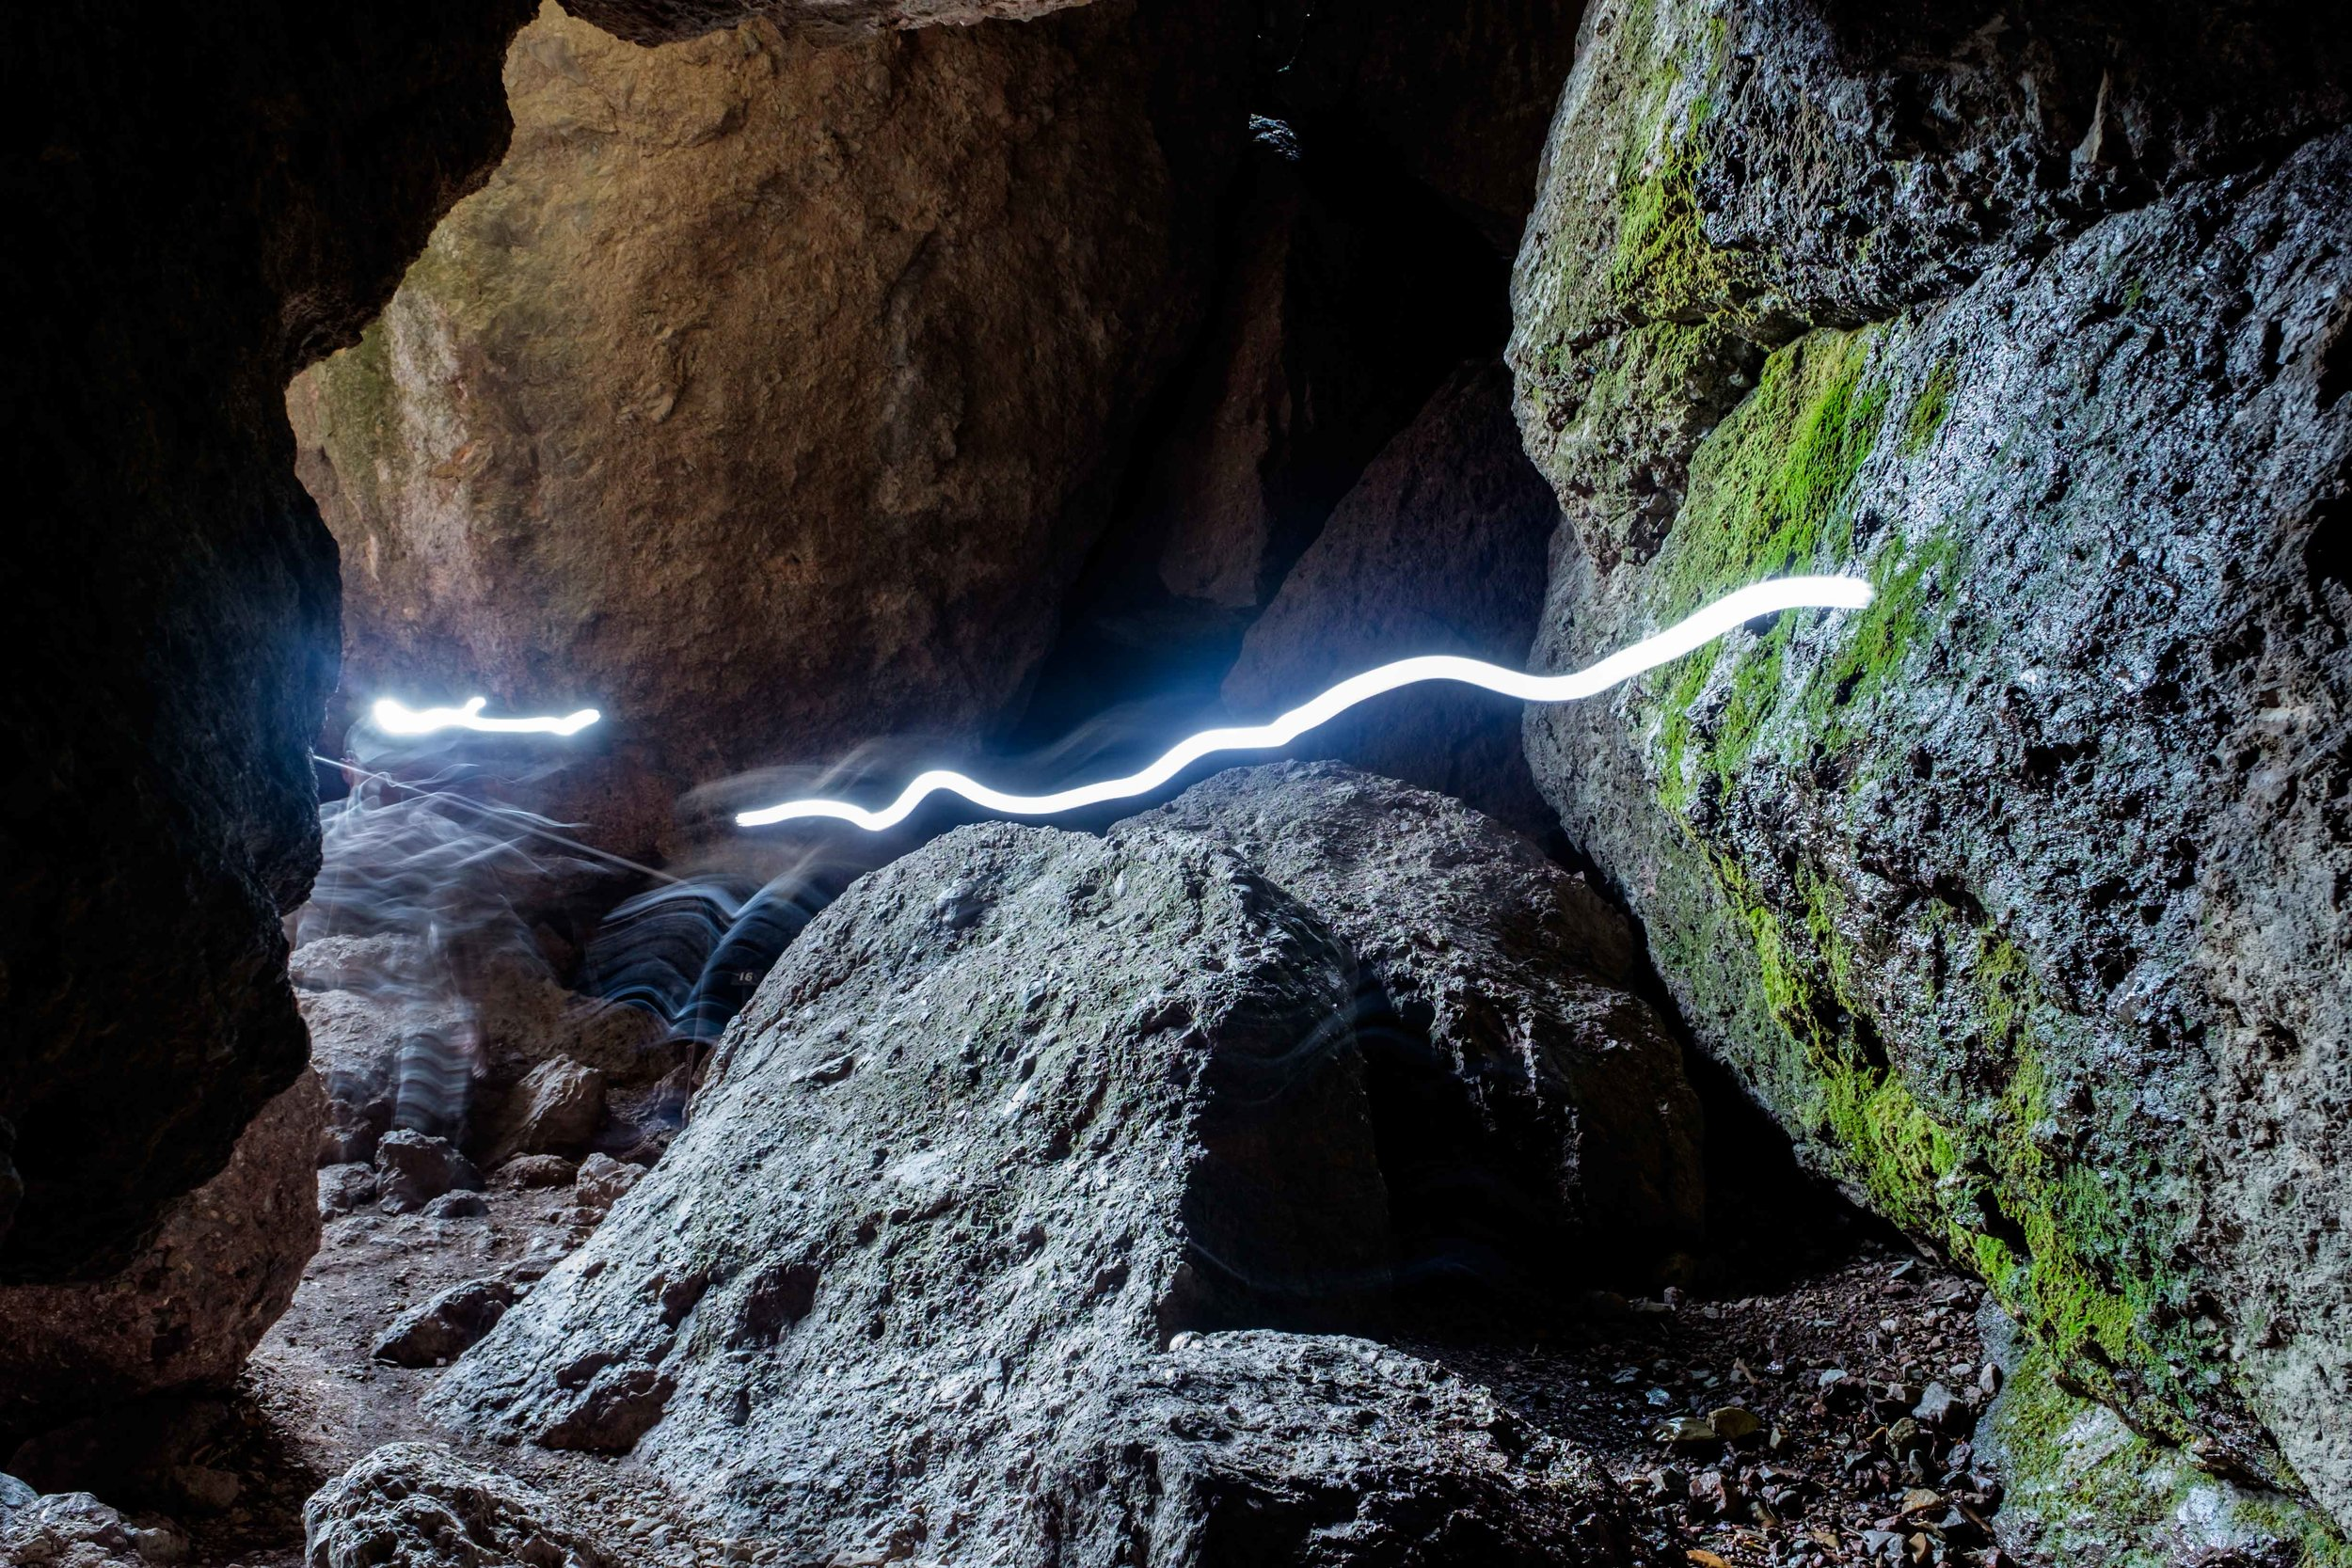 Headlamps are required, even in the middle of the day in the talus caves.